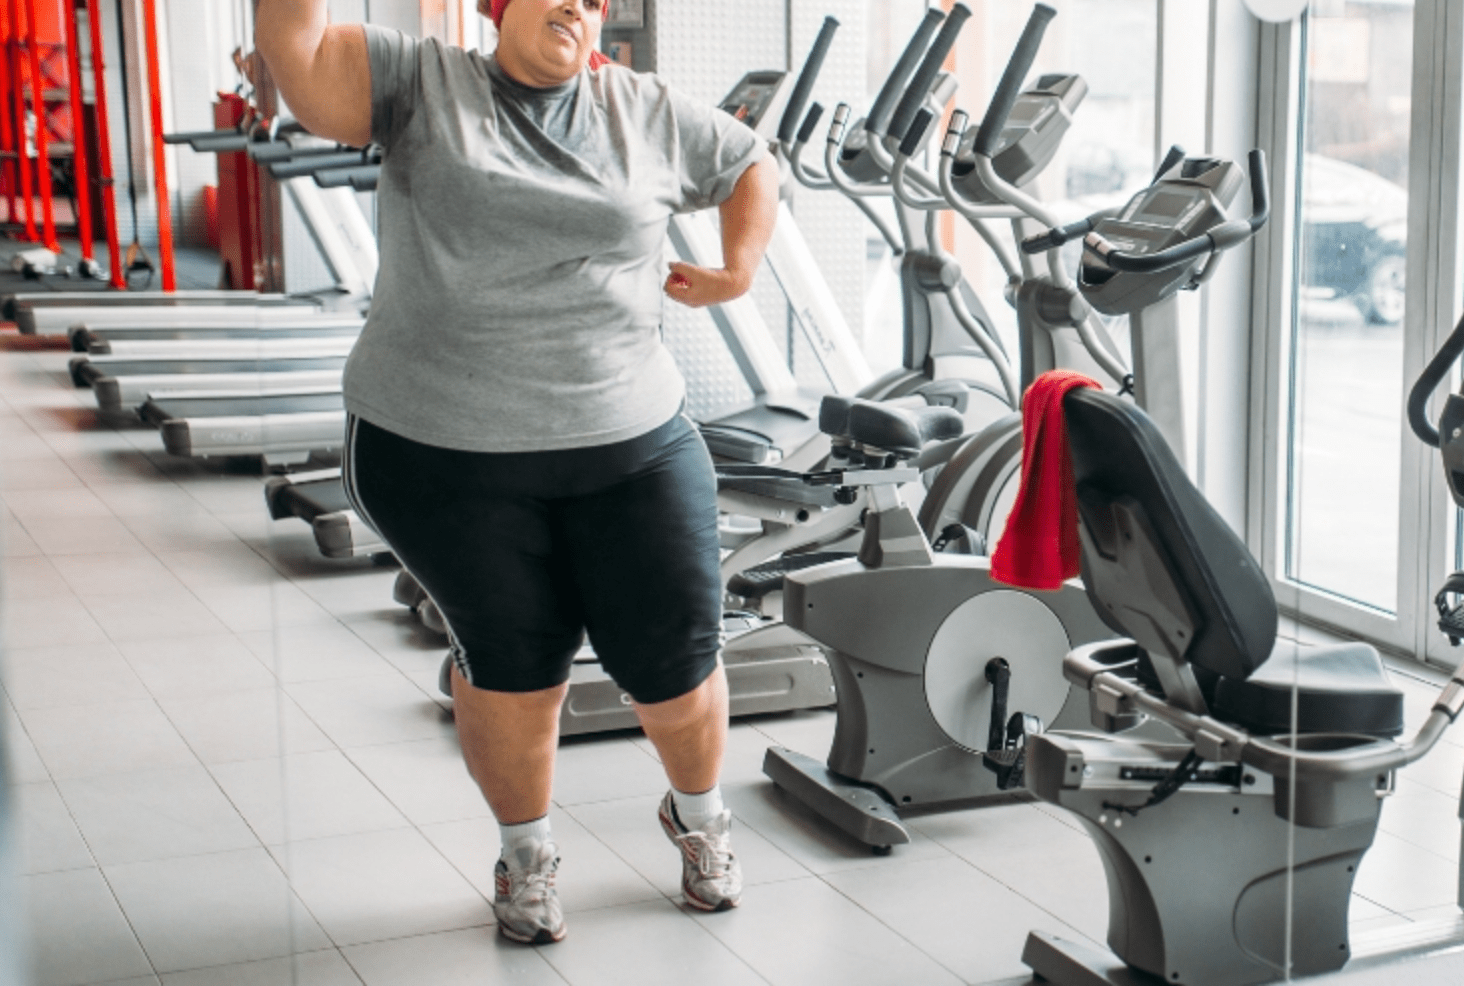 Woman Hell Bent On Losing Weight In The Gym Gets Bullied, Good Samaritan Comes To Her Rescue